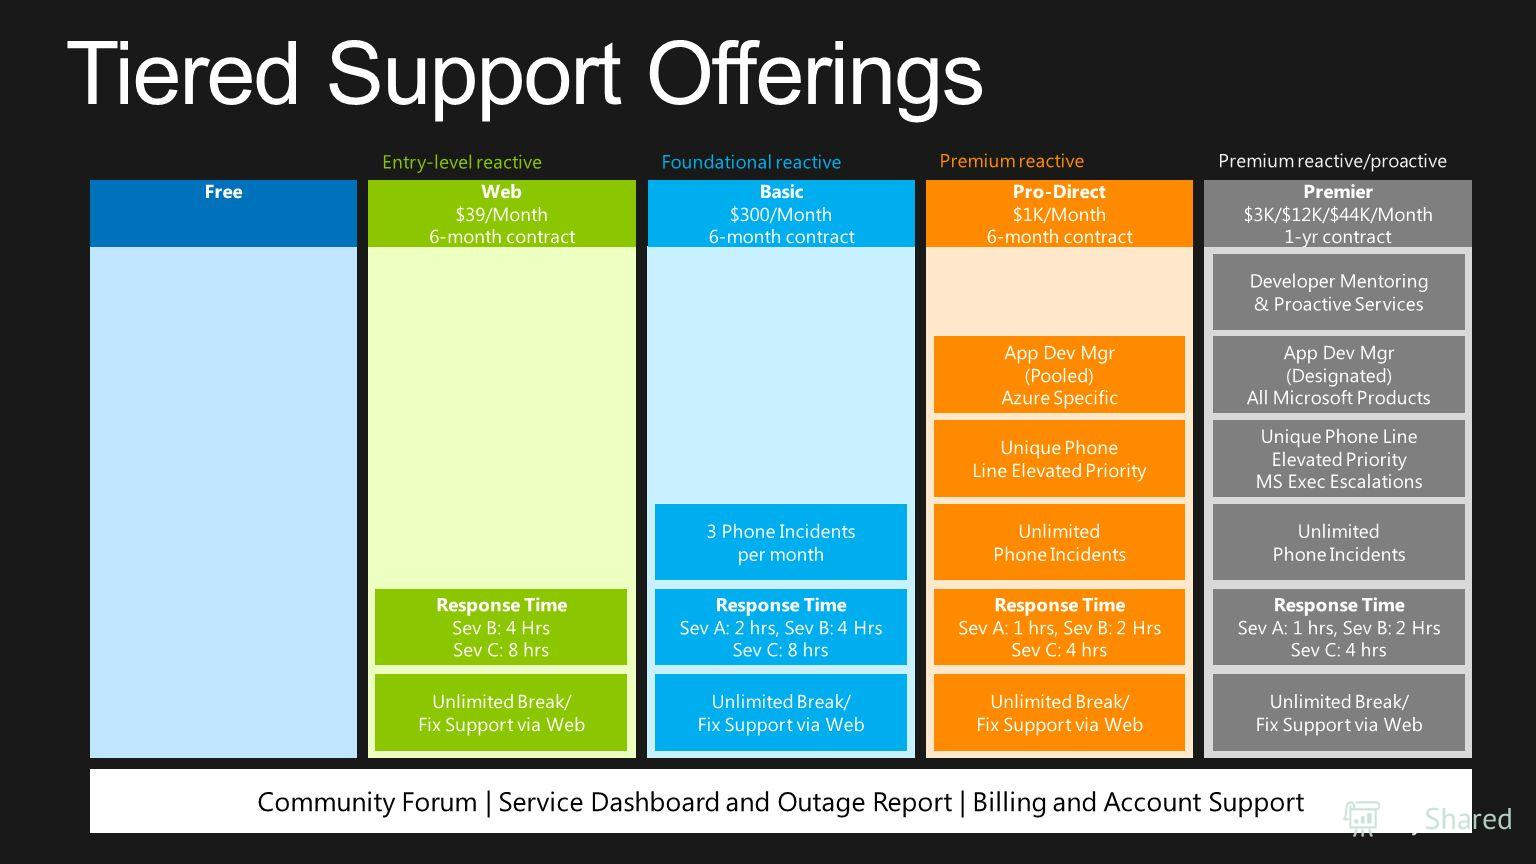 Community Forum | Service Dashboard and Outage Report | Billing and Account Support Unlimited Break/ Fix Support via Web Response Time Sev B: 4 Hrs Sev C: 8 hrs Response Time Sev A: 2 hrs, Sev B: 4 Hrs Sev C: 8 hrs Response Time Sev A: 1 hrs, Sev B: